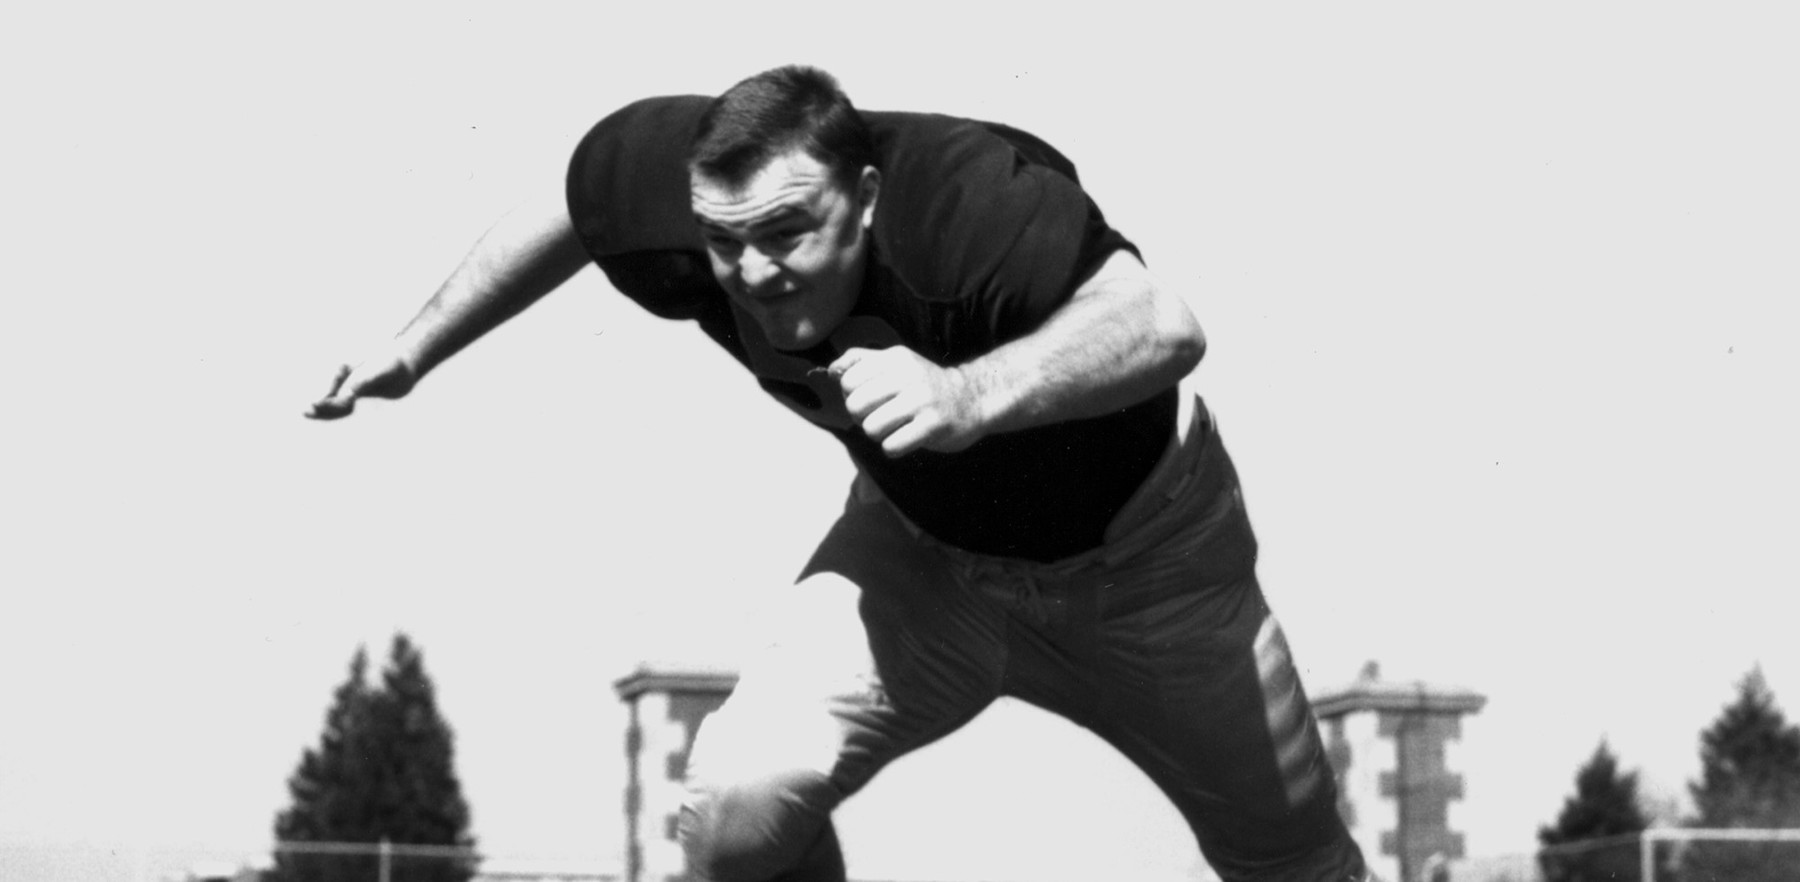 archival promotional  image of Dick Butkus as an Illini